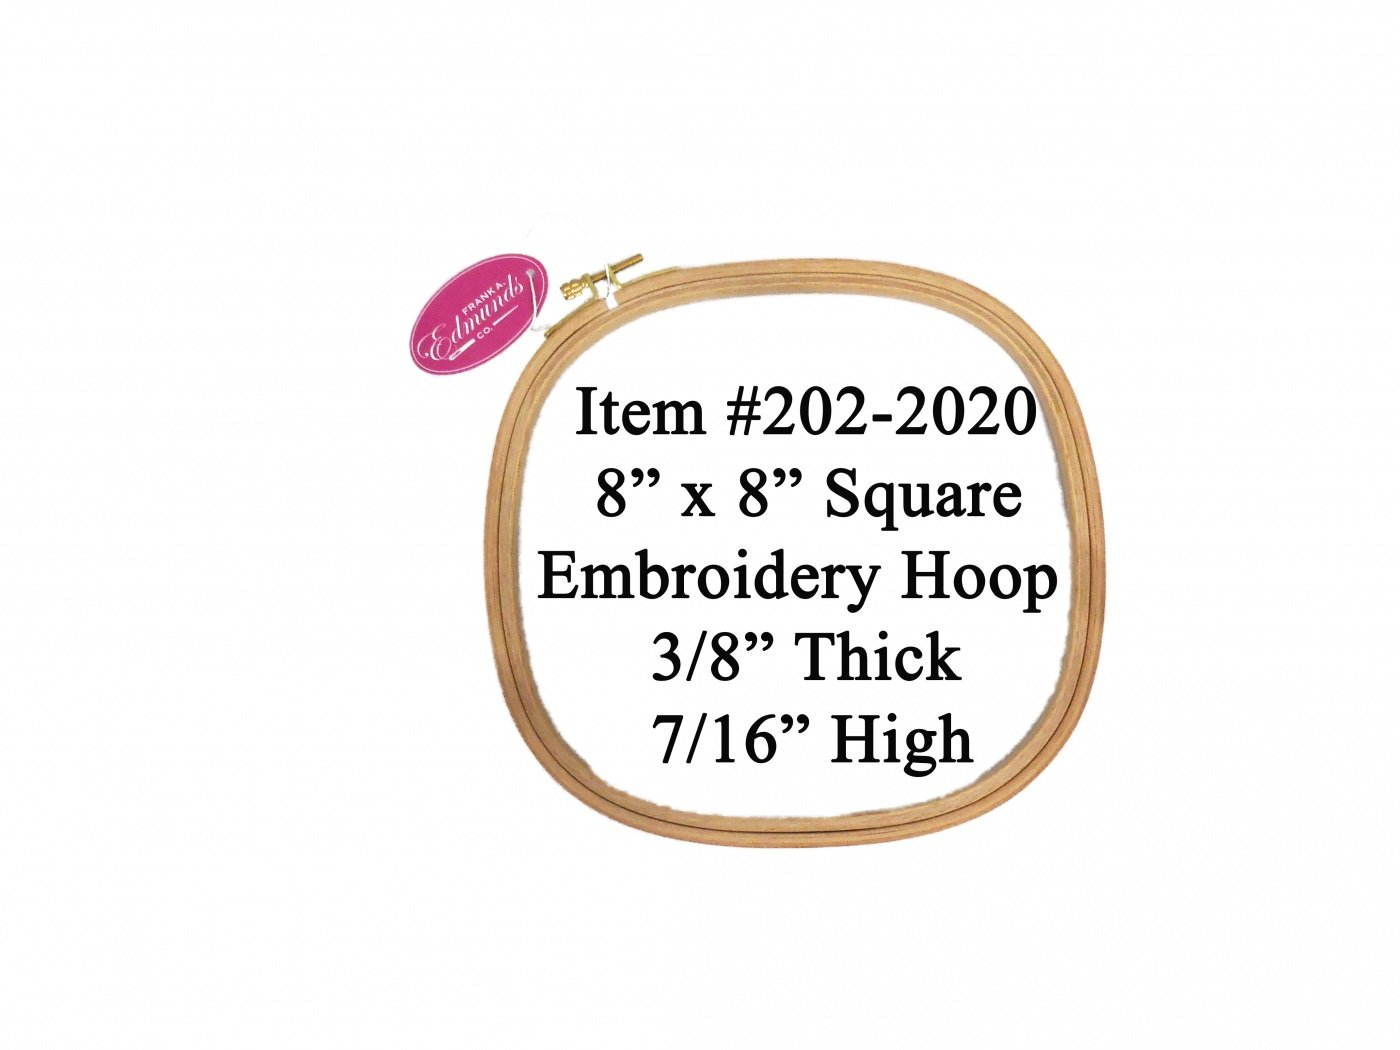 8 Square Embroidery Hoop